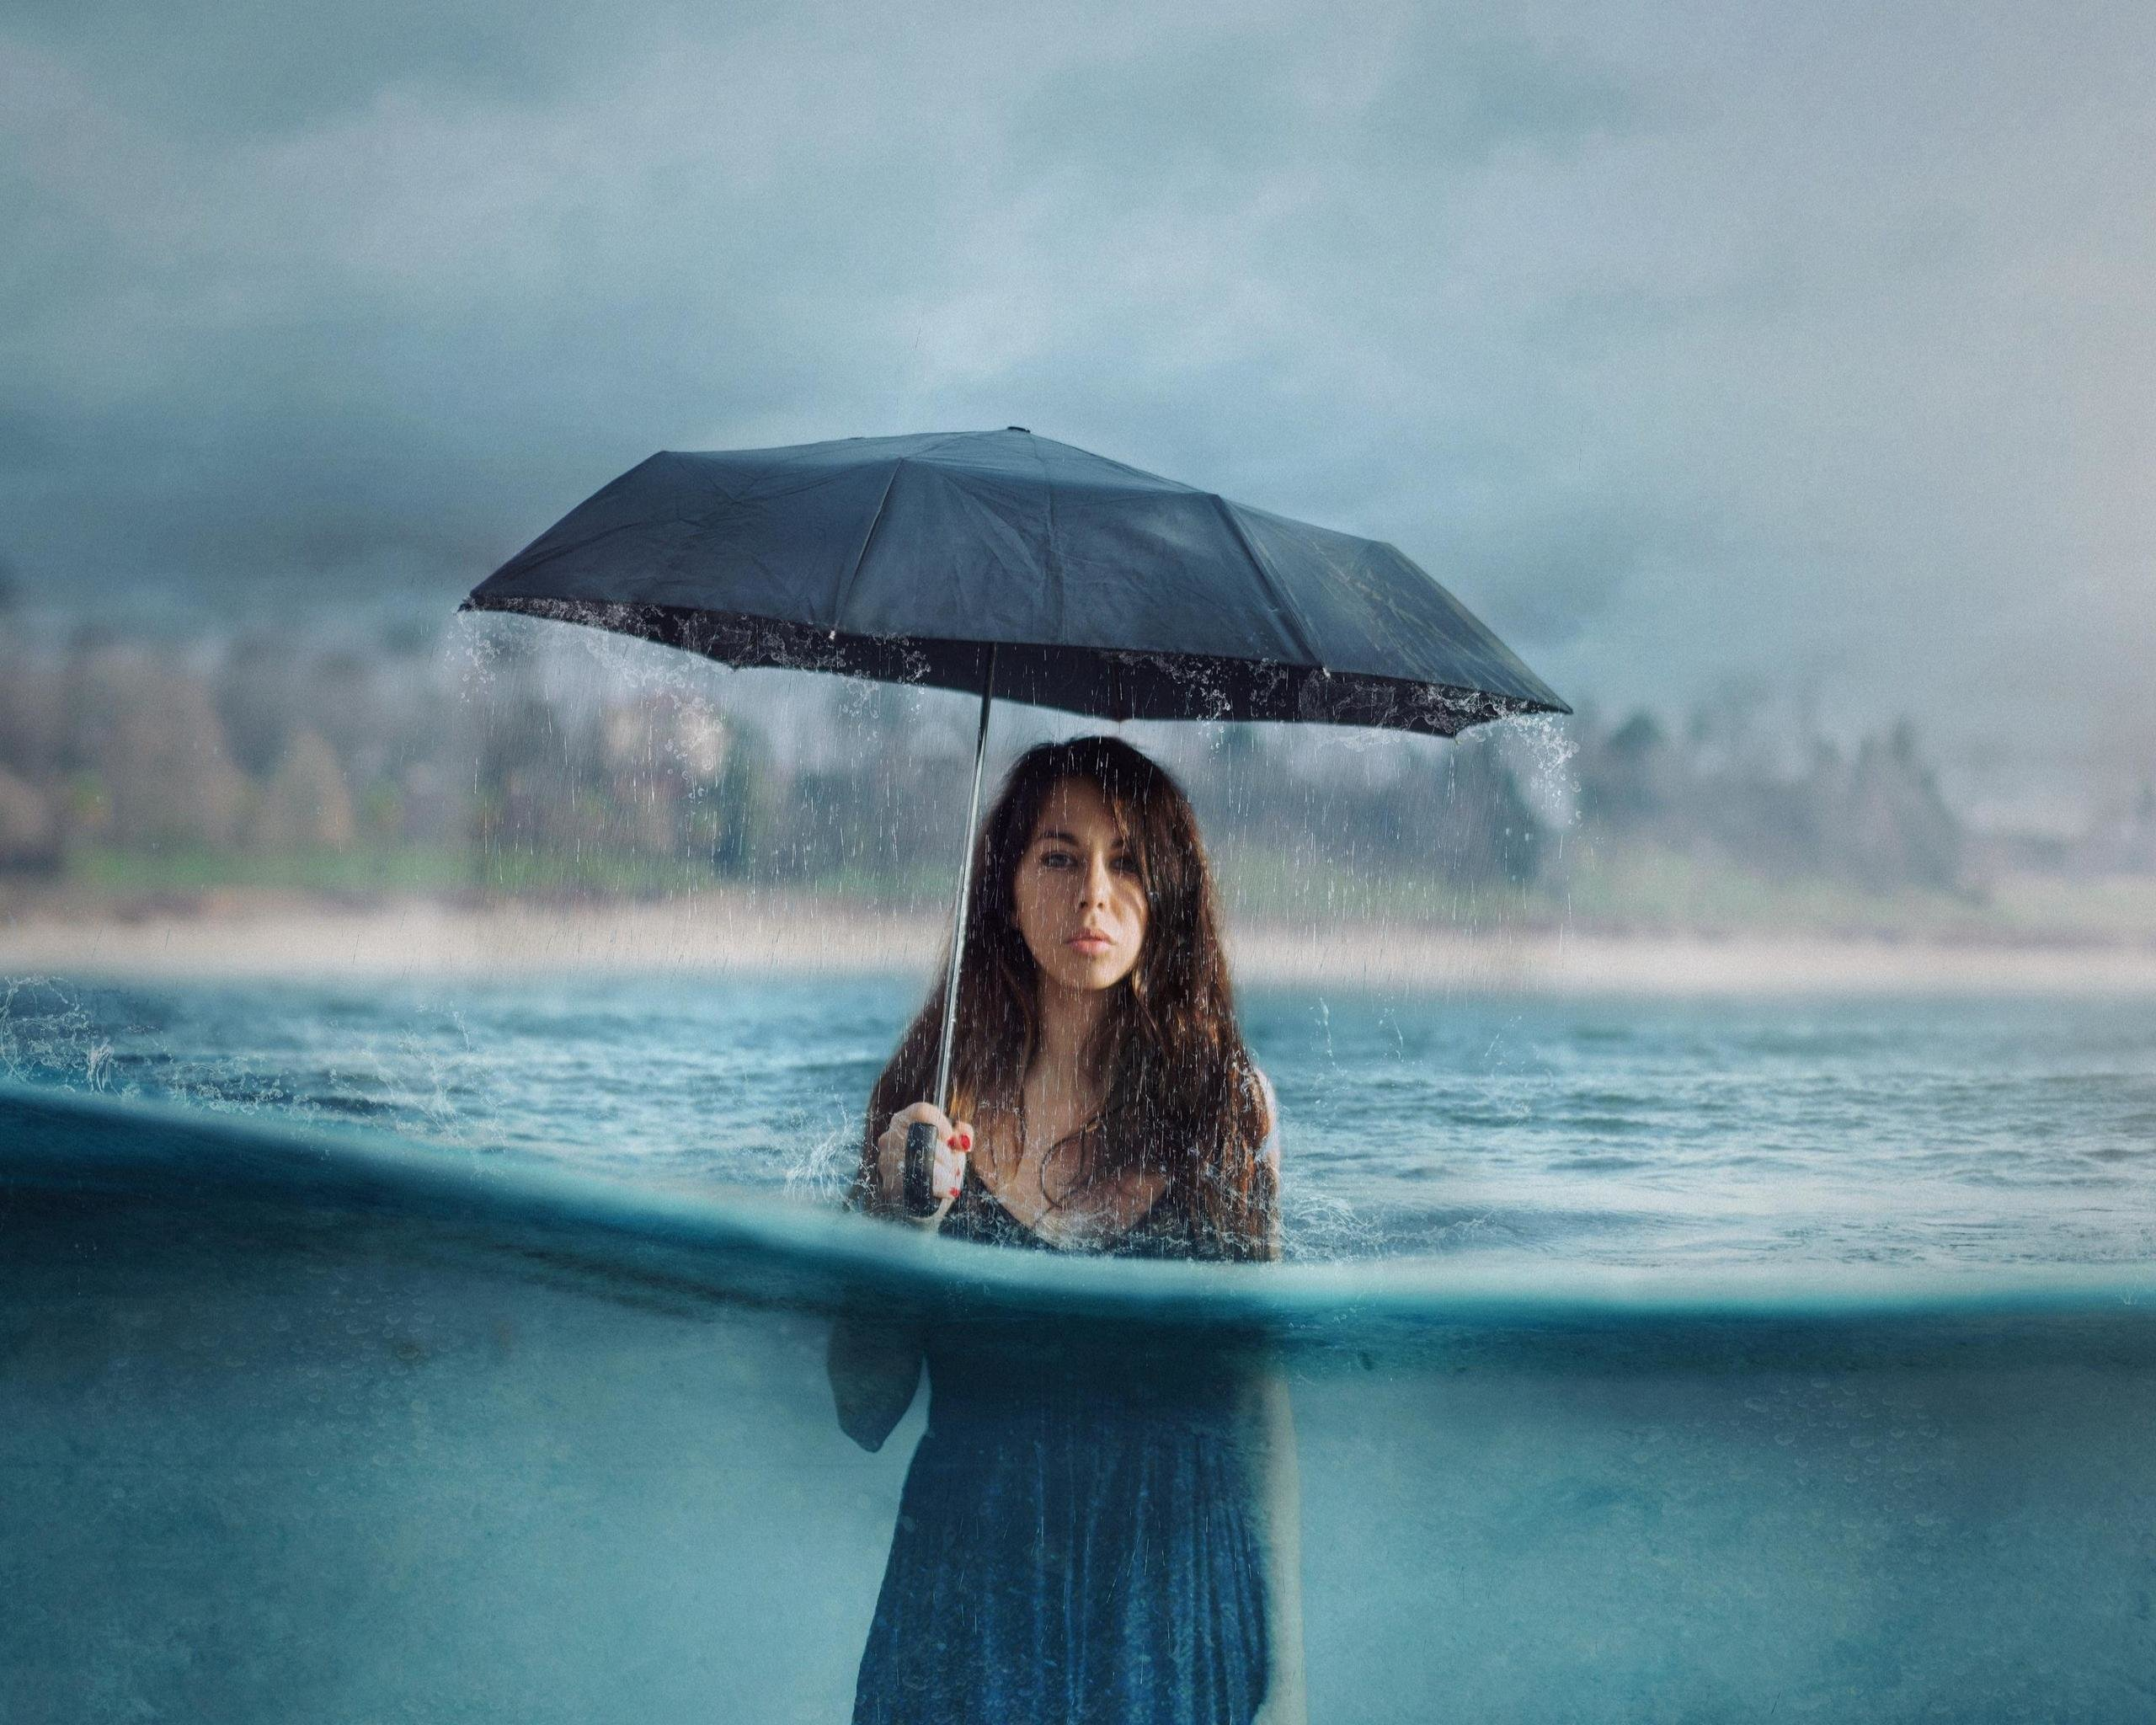 Awesome Photoshop Manipulation Free Background Id304221 For Hd